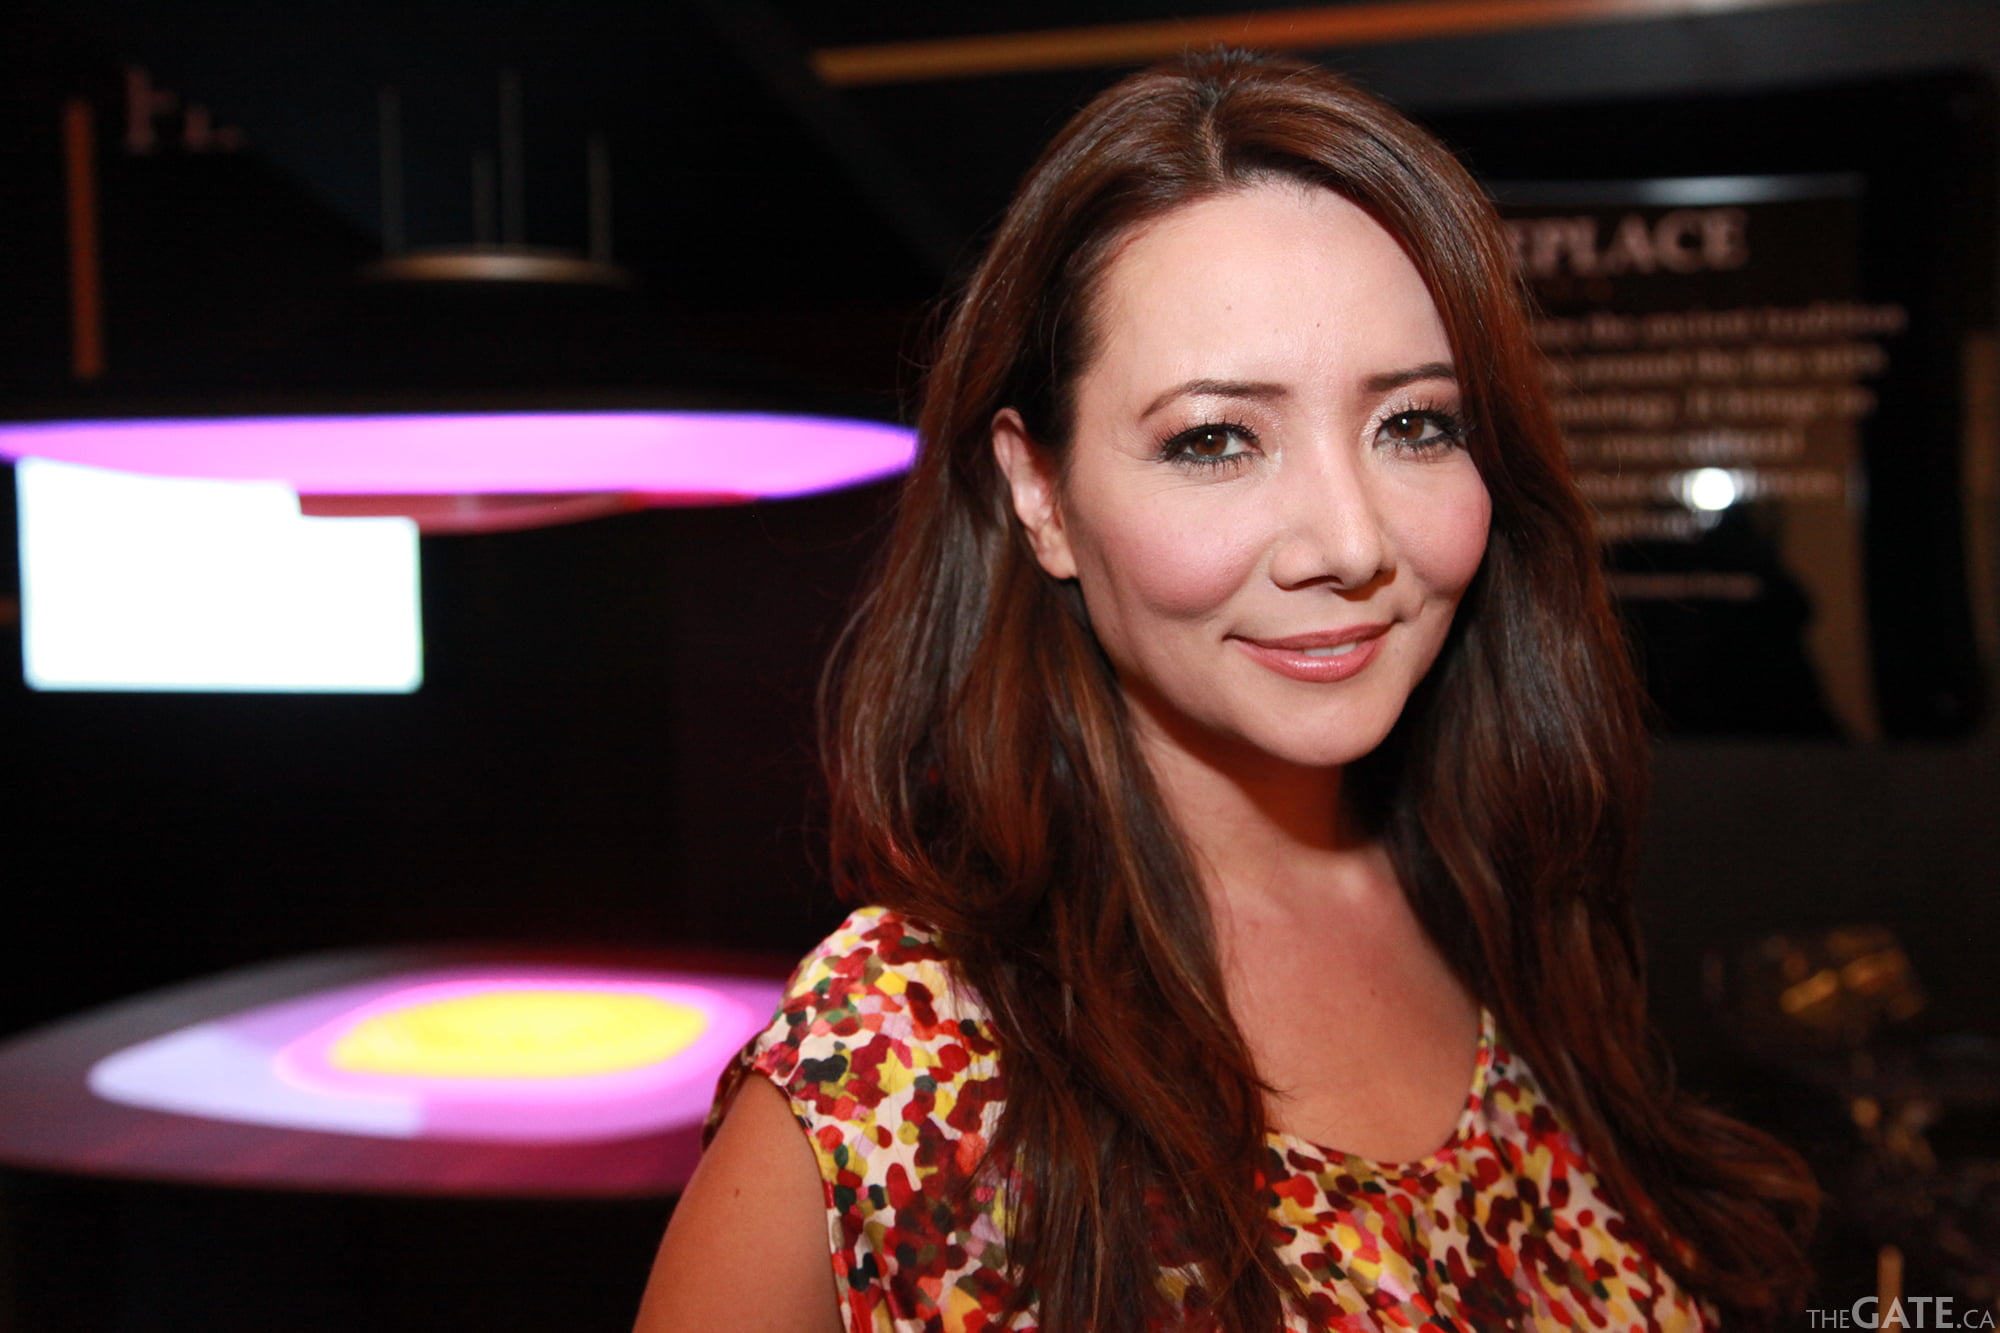 Daily Planet Host Ziya Tong Talks Ces 2013 The Gate